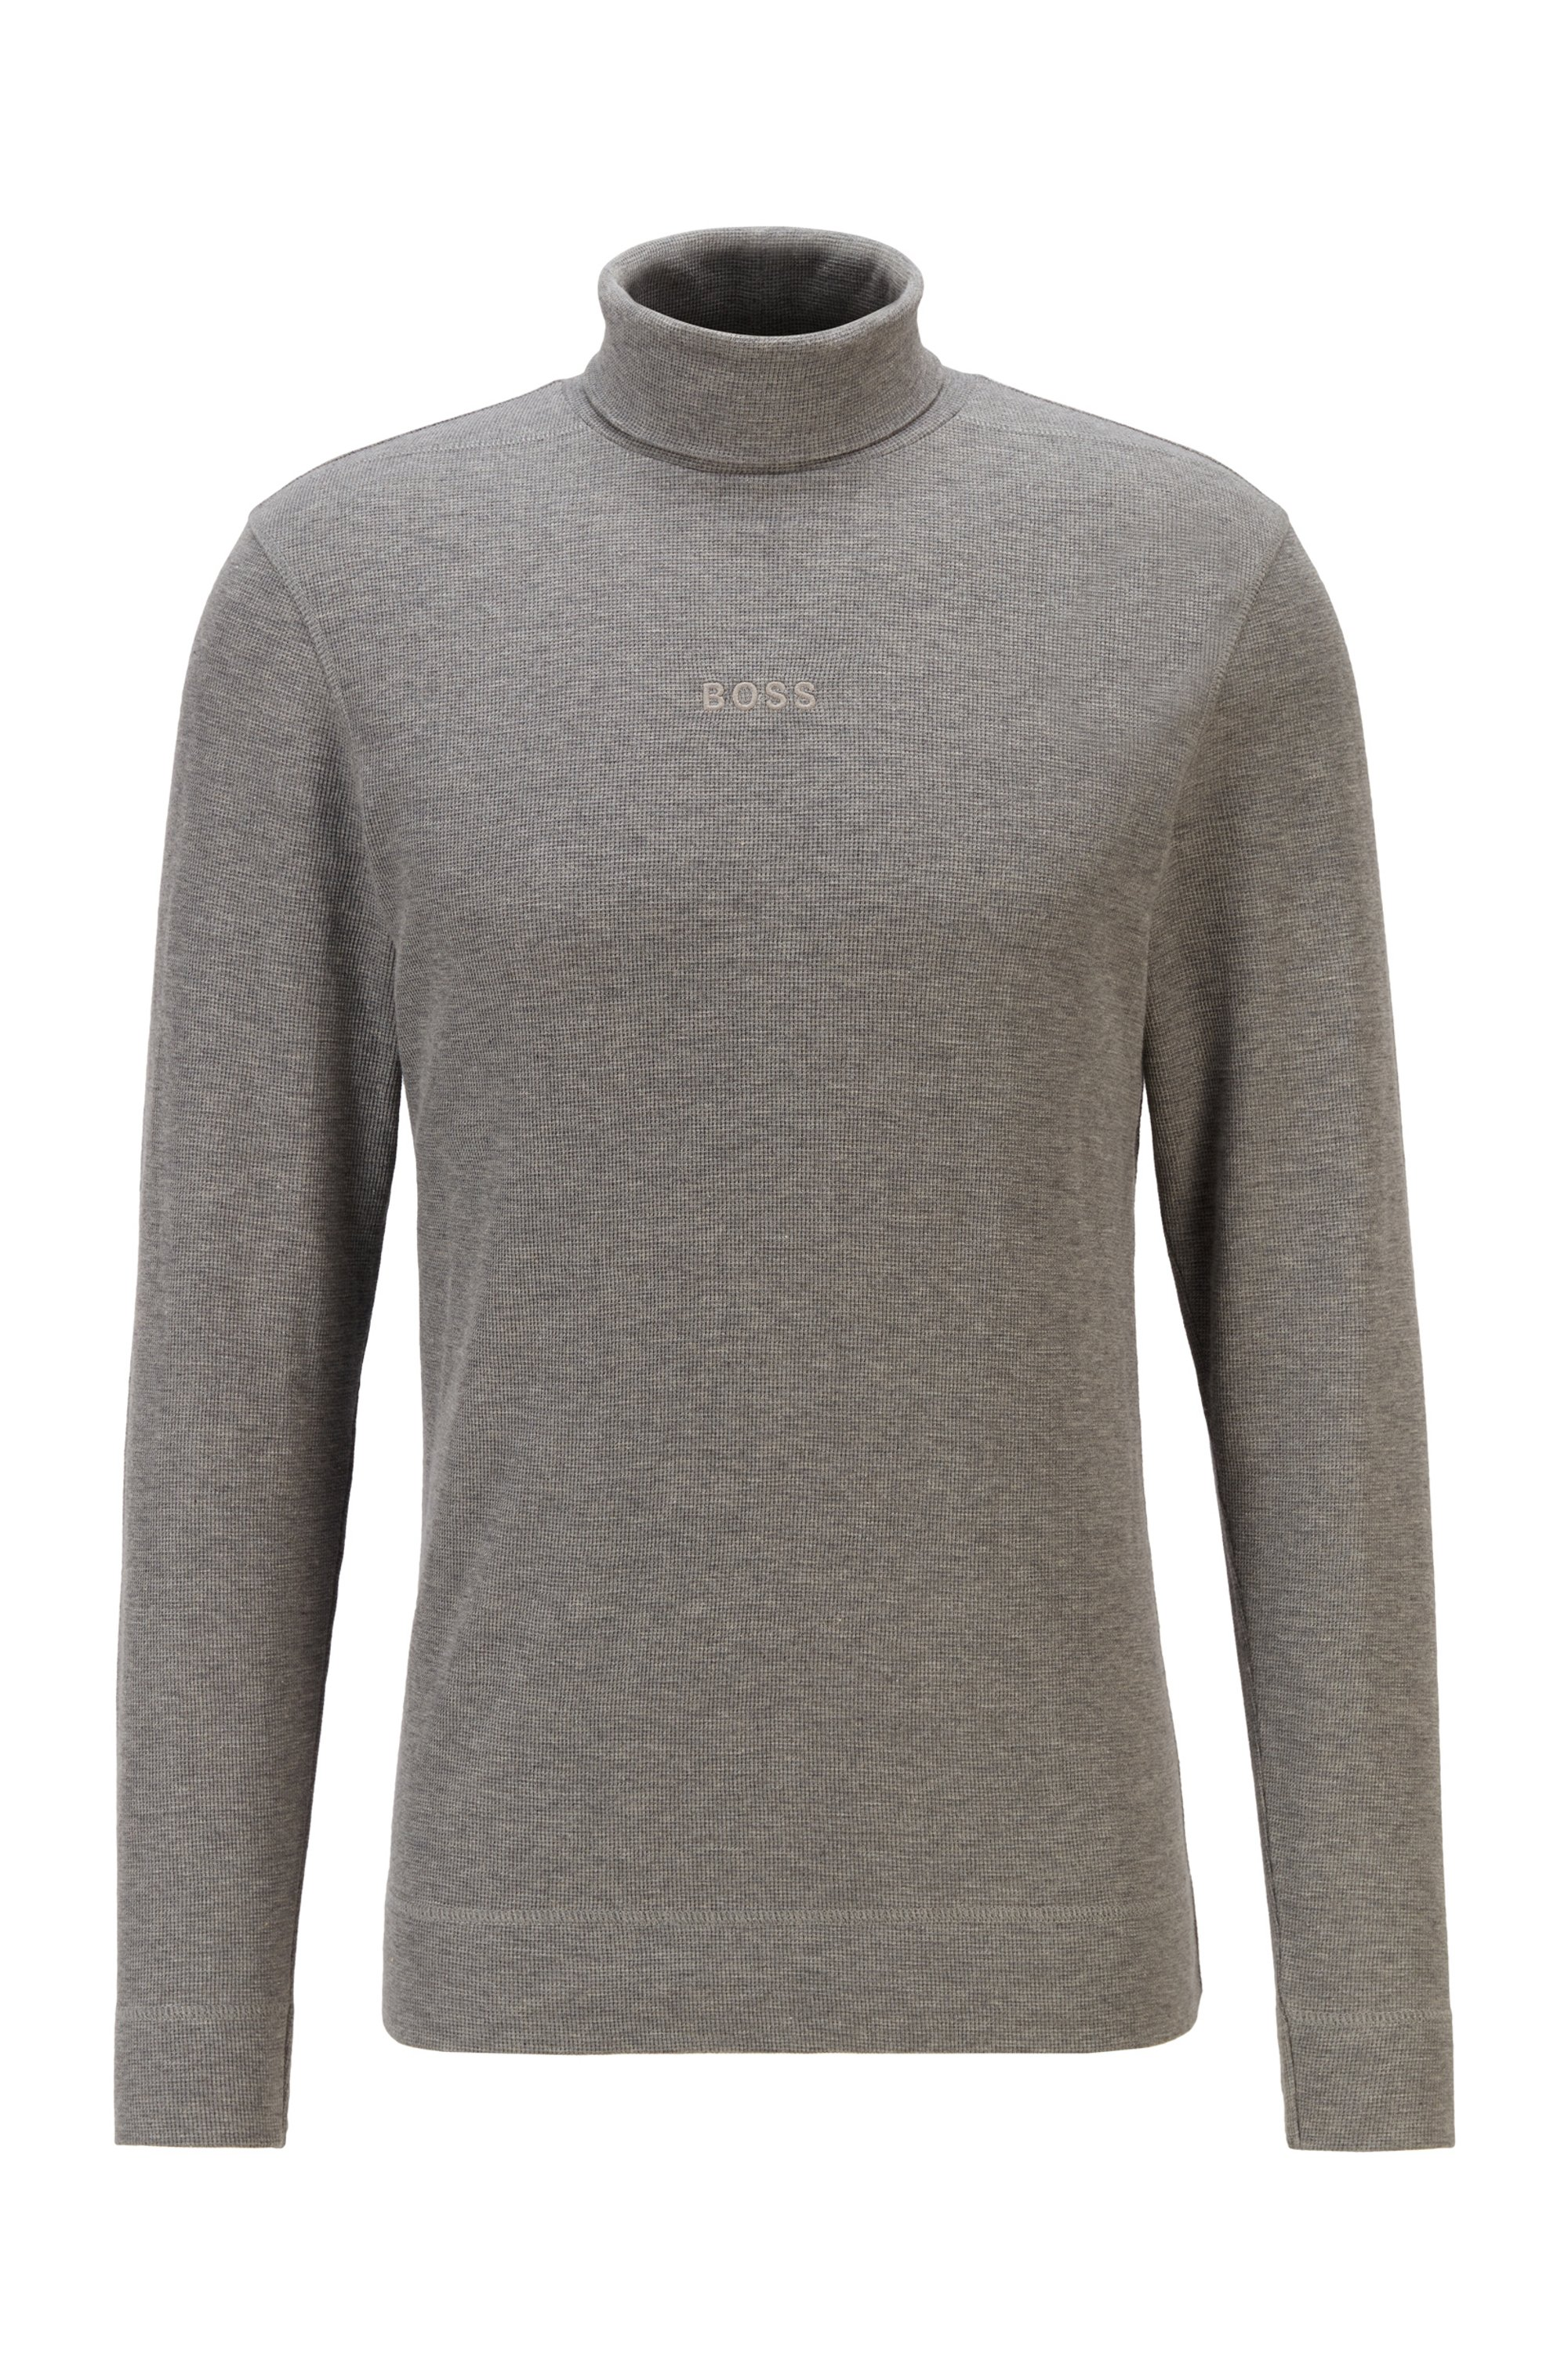 Logo-embroidered high-neck T-shirt in structured melange cotton, Light Grey